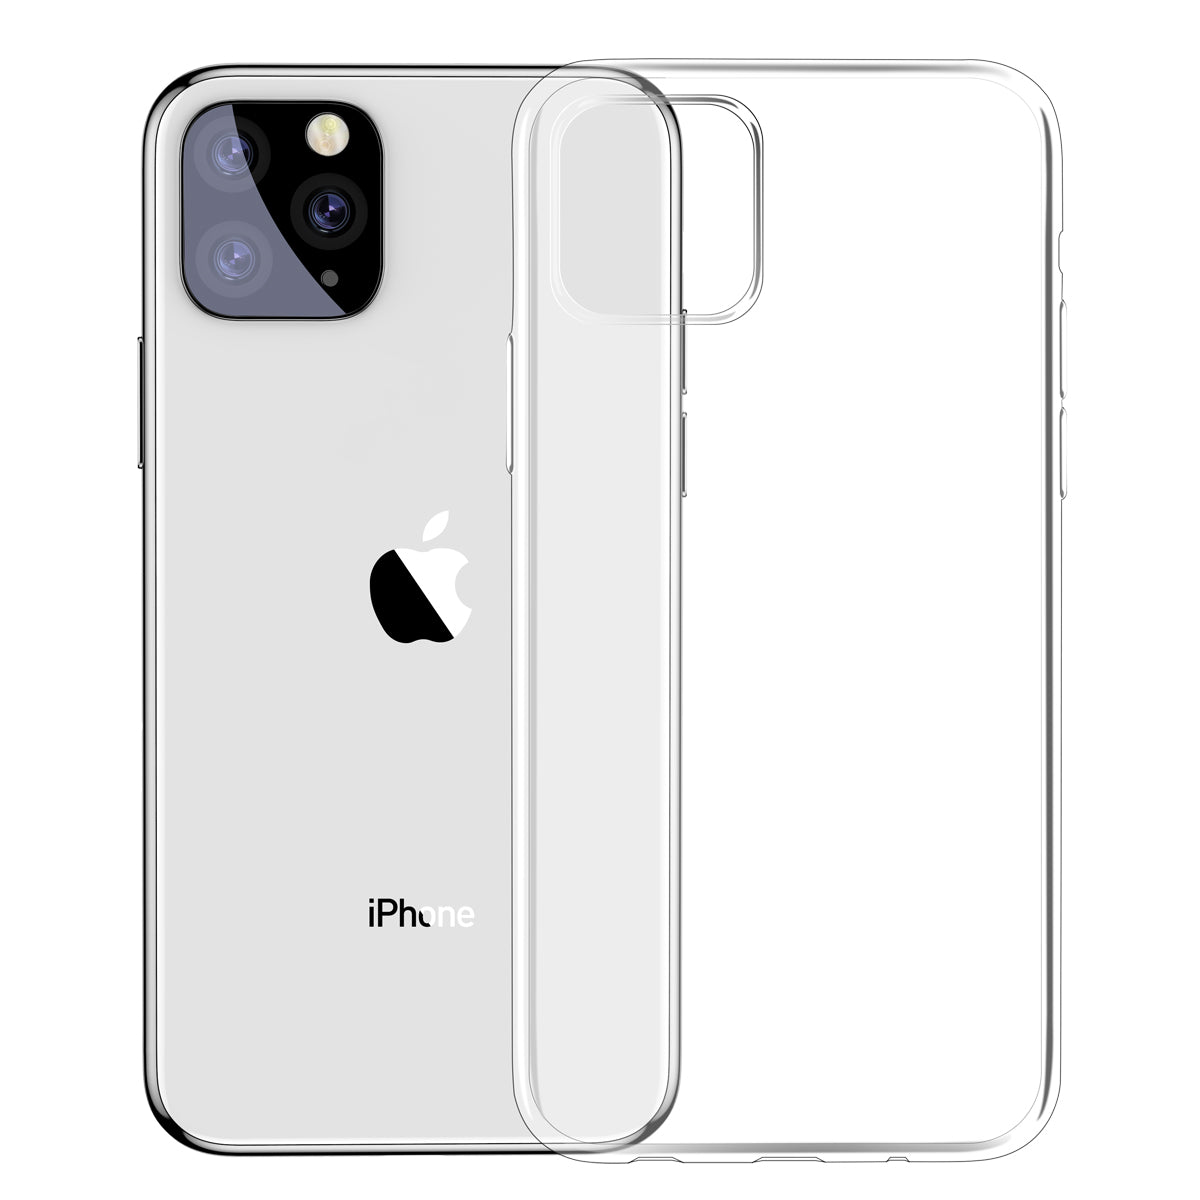 BASEUS Simplicity Series Basic Model for iPhone 11 Pro Max / 11 Pro / 11 / XR